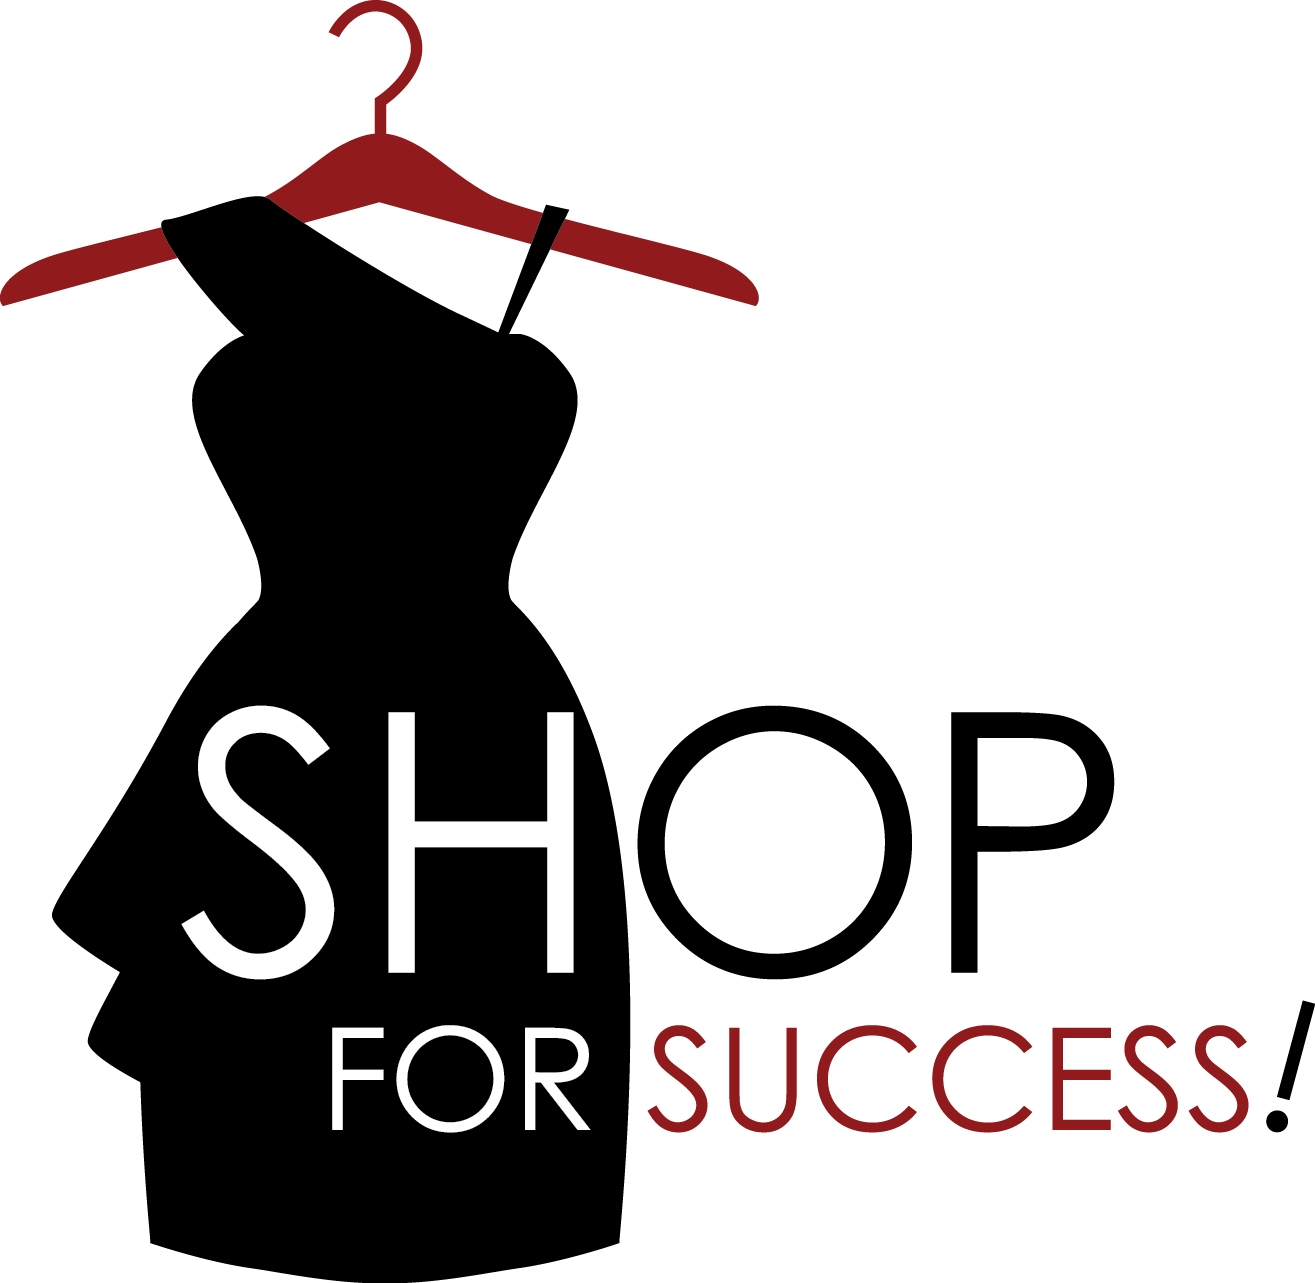 shopping event benefiting dress for success conric pr shop for success logo